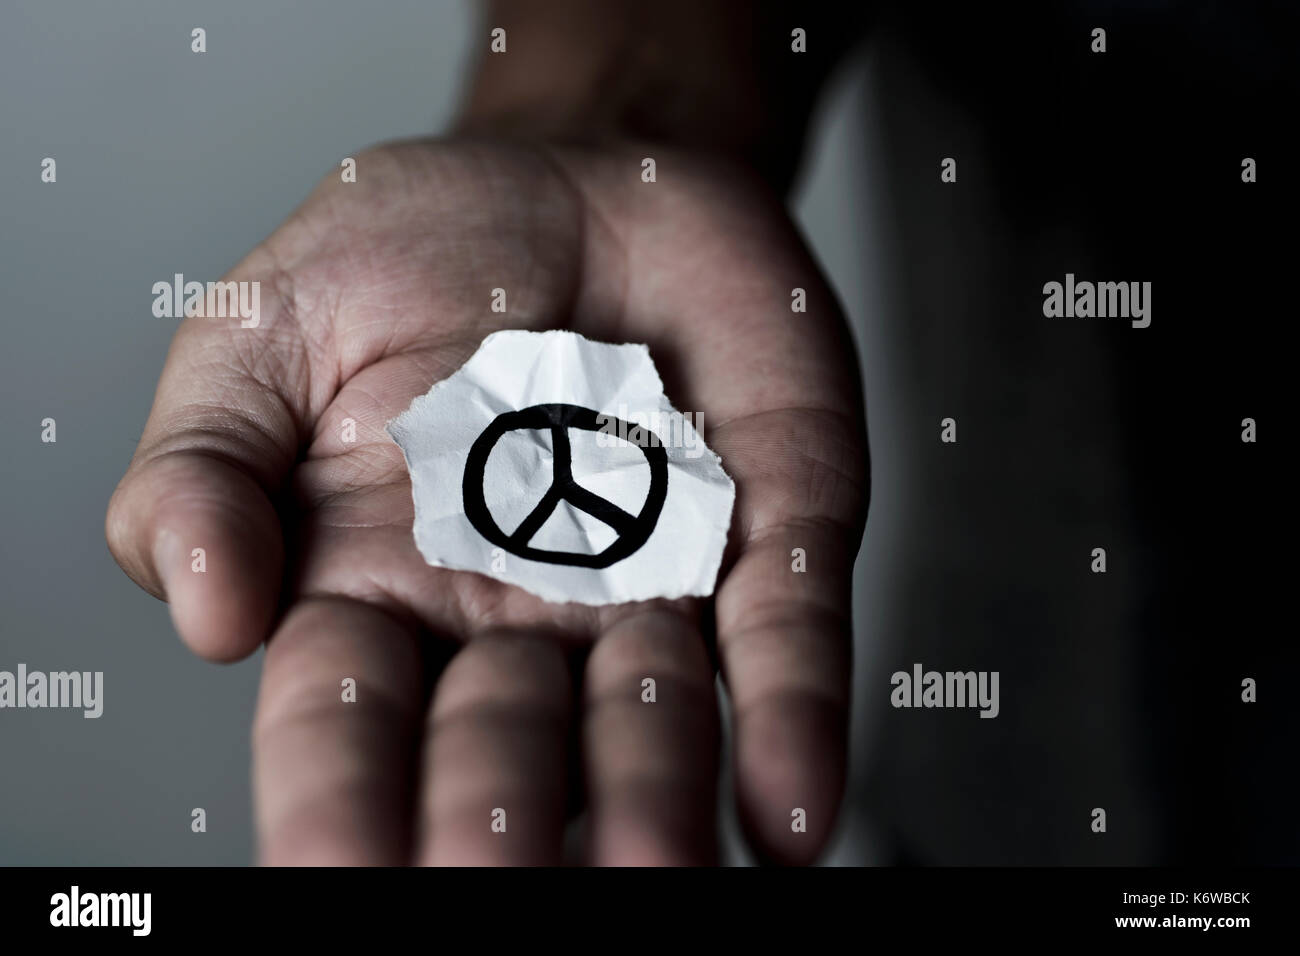 closeup of a young man with a piece of paper with a peace symbol drawn in it, in the palm of his hand - Stock Image